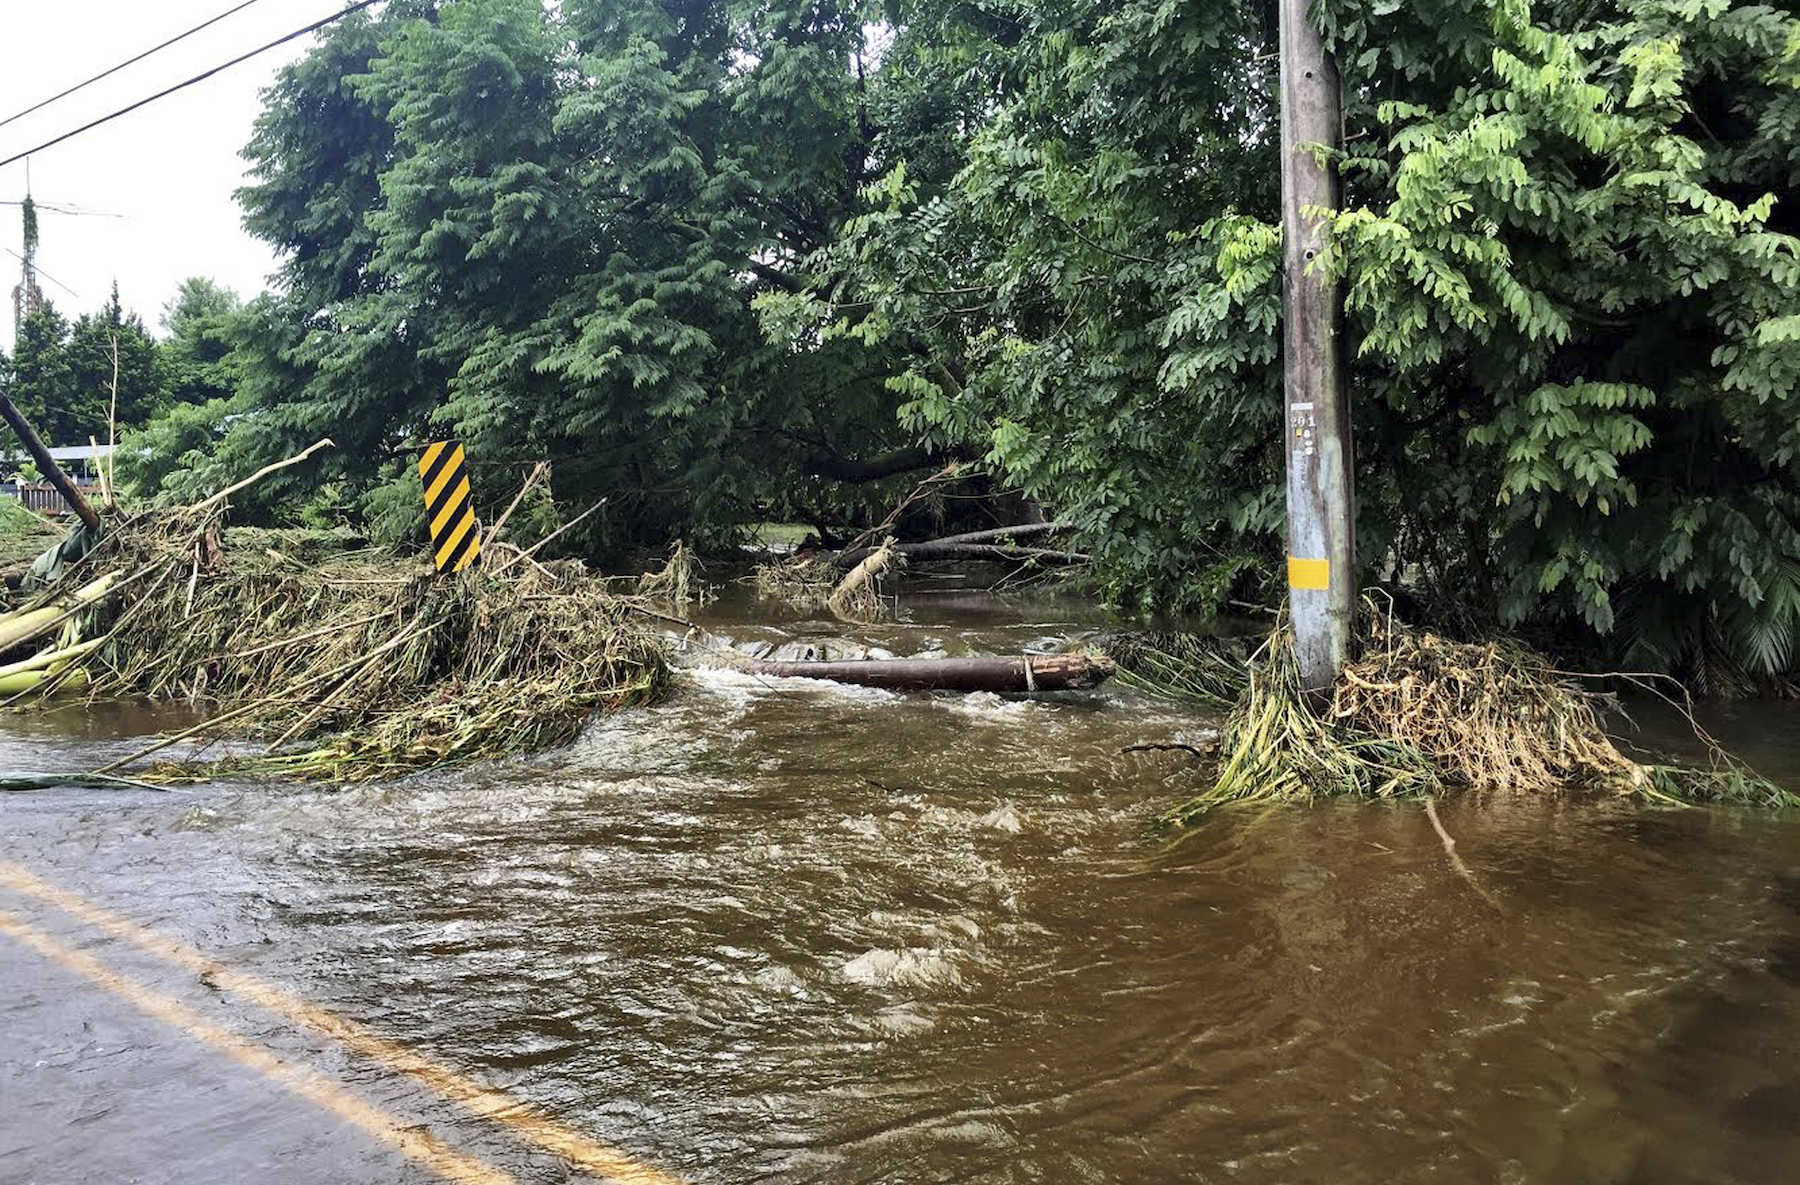 "<div class=""meta image-caption""><div class=""origin-logo origin-image ap""><span>AP</span></div><span class=""caption-text"">In this photo provided by Jessica Henricks, is flooding and damage from Hurricane Lane Friday, Aug. 24, 2018, near Hilo, Hawaii. (Jessica Henricks via AP)</span></div>"